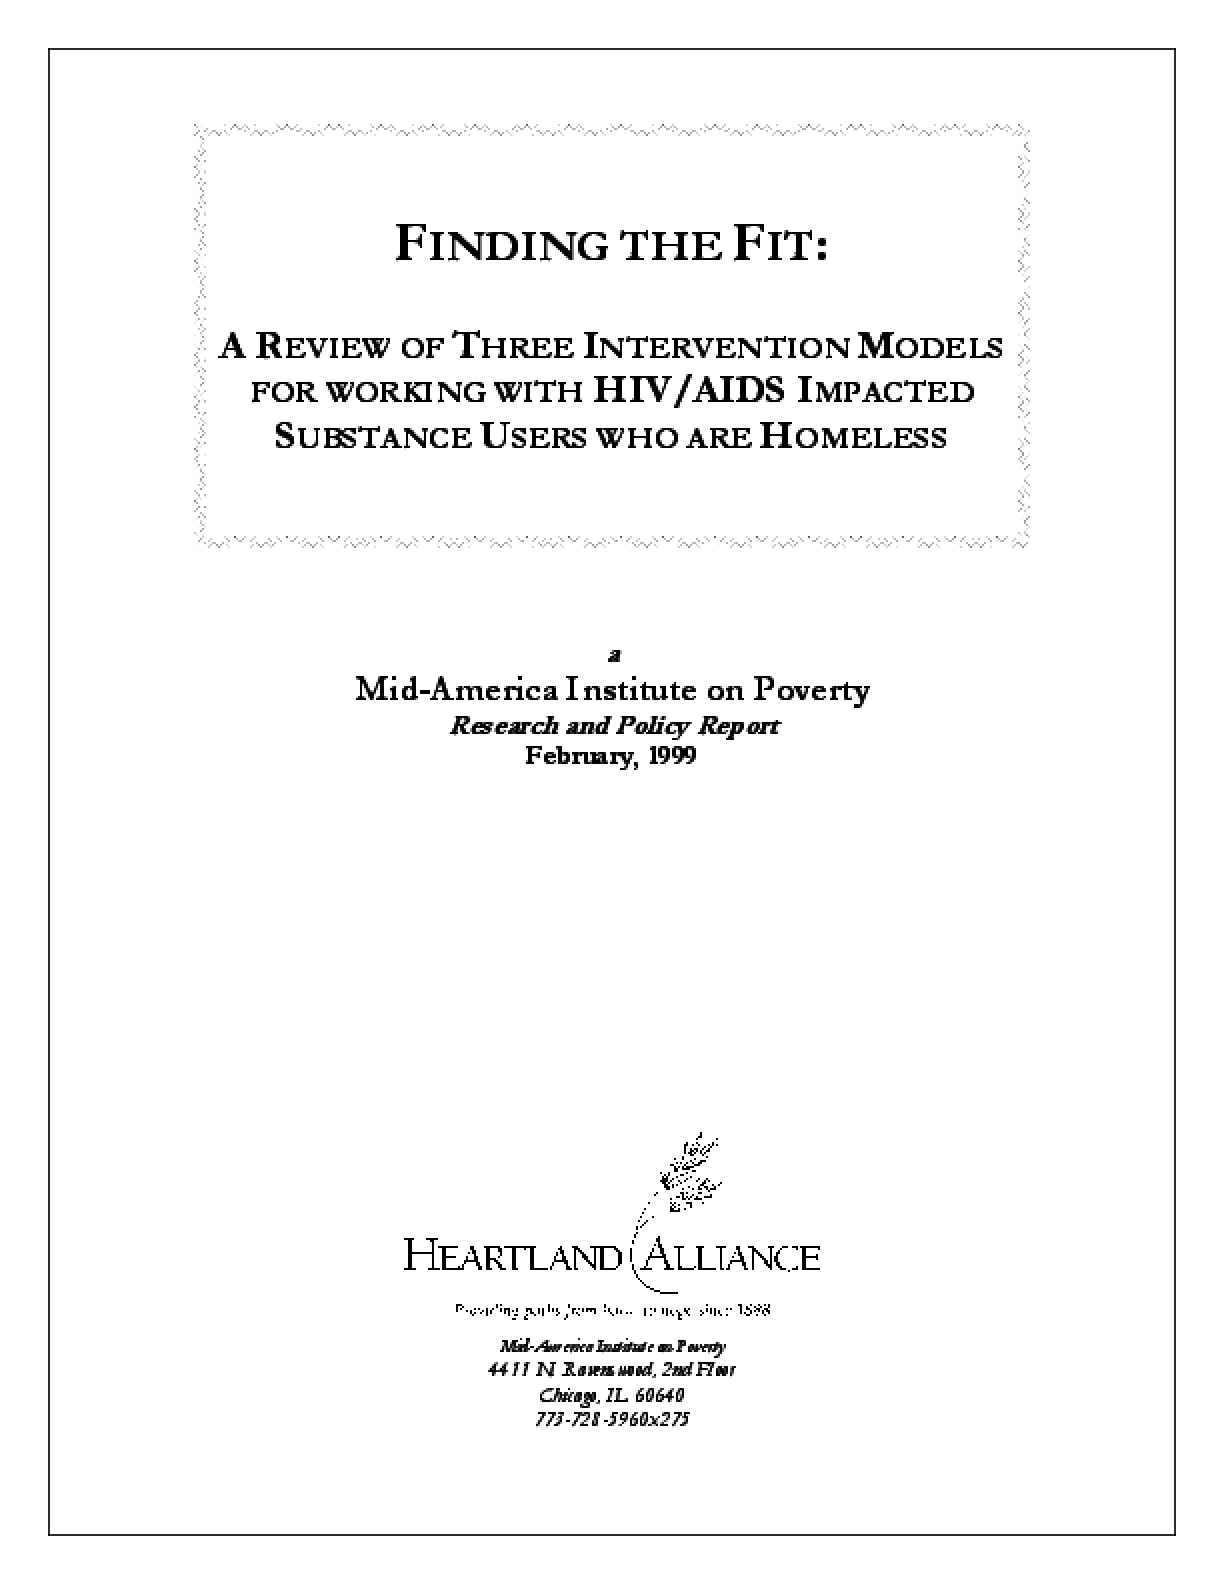 Finding the Fit: A Review of Three Intervention Models for Working with HIV/AIDS Impacted Substance Users who are Homeless